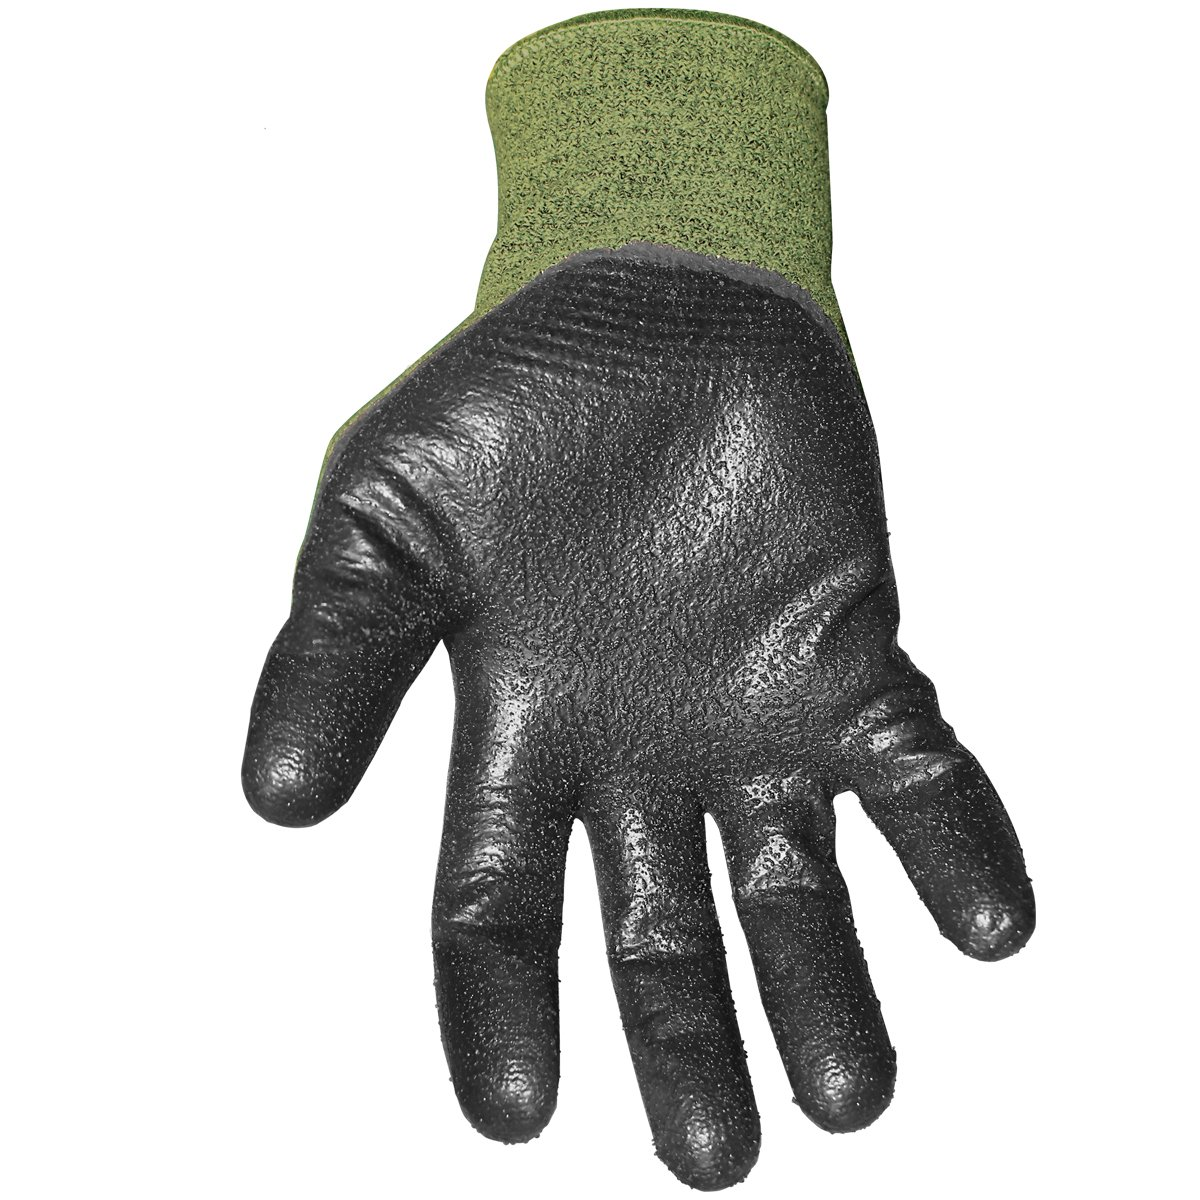 Youngstown Glove 12-4000-60-L FR 4000 Cut-Resistant Gloves, Large, Multicolored by Youngstown Glove Company (Image #2)